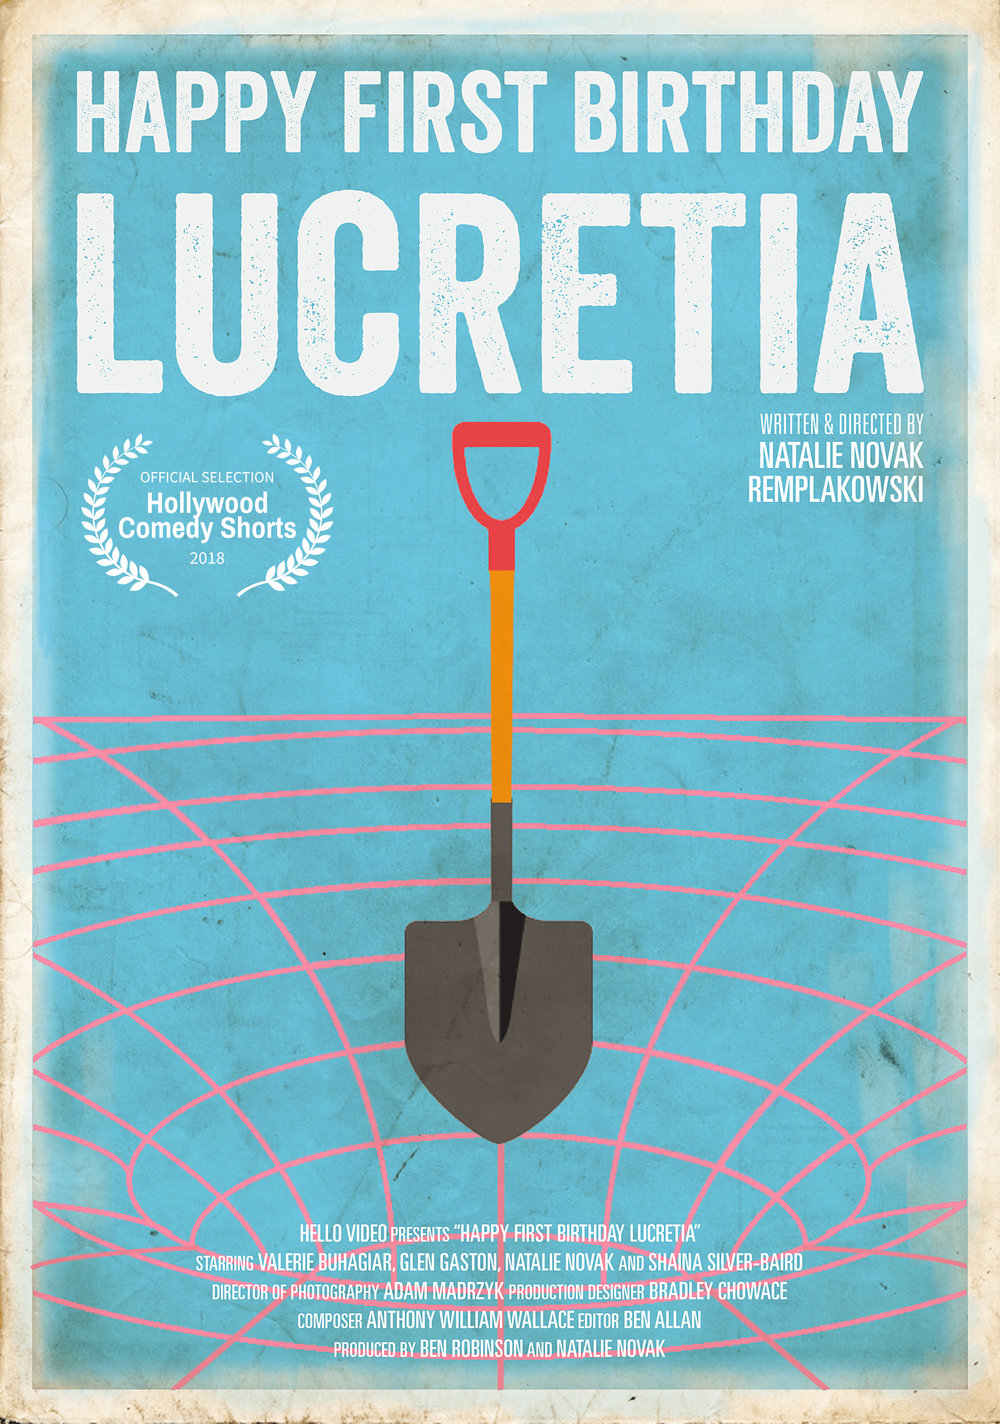 Happy First Birthday Lucretia (2017)  Short film currently in Post-production  Written & Directed by Natalie Novak Remplakowski  Produced by: Ben Robinson & Natalie Novak  Poster Illustration by Logan Graham Greene, Design by Juliana Eye